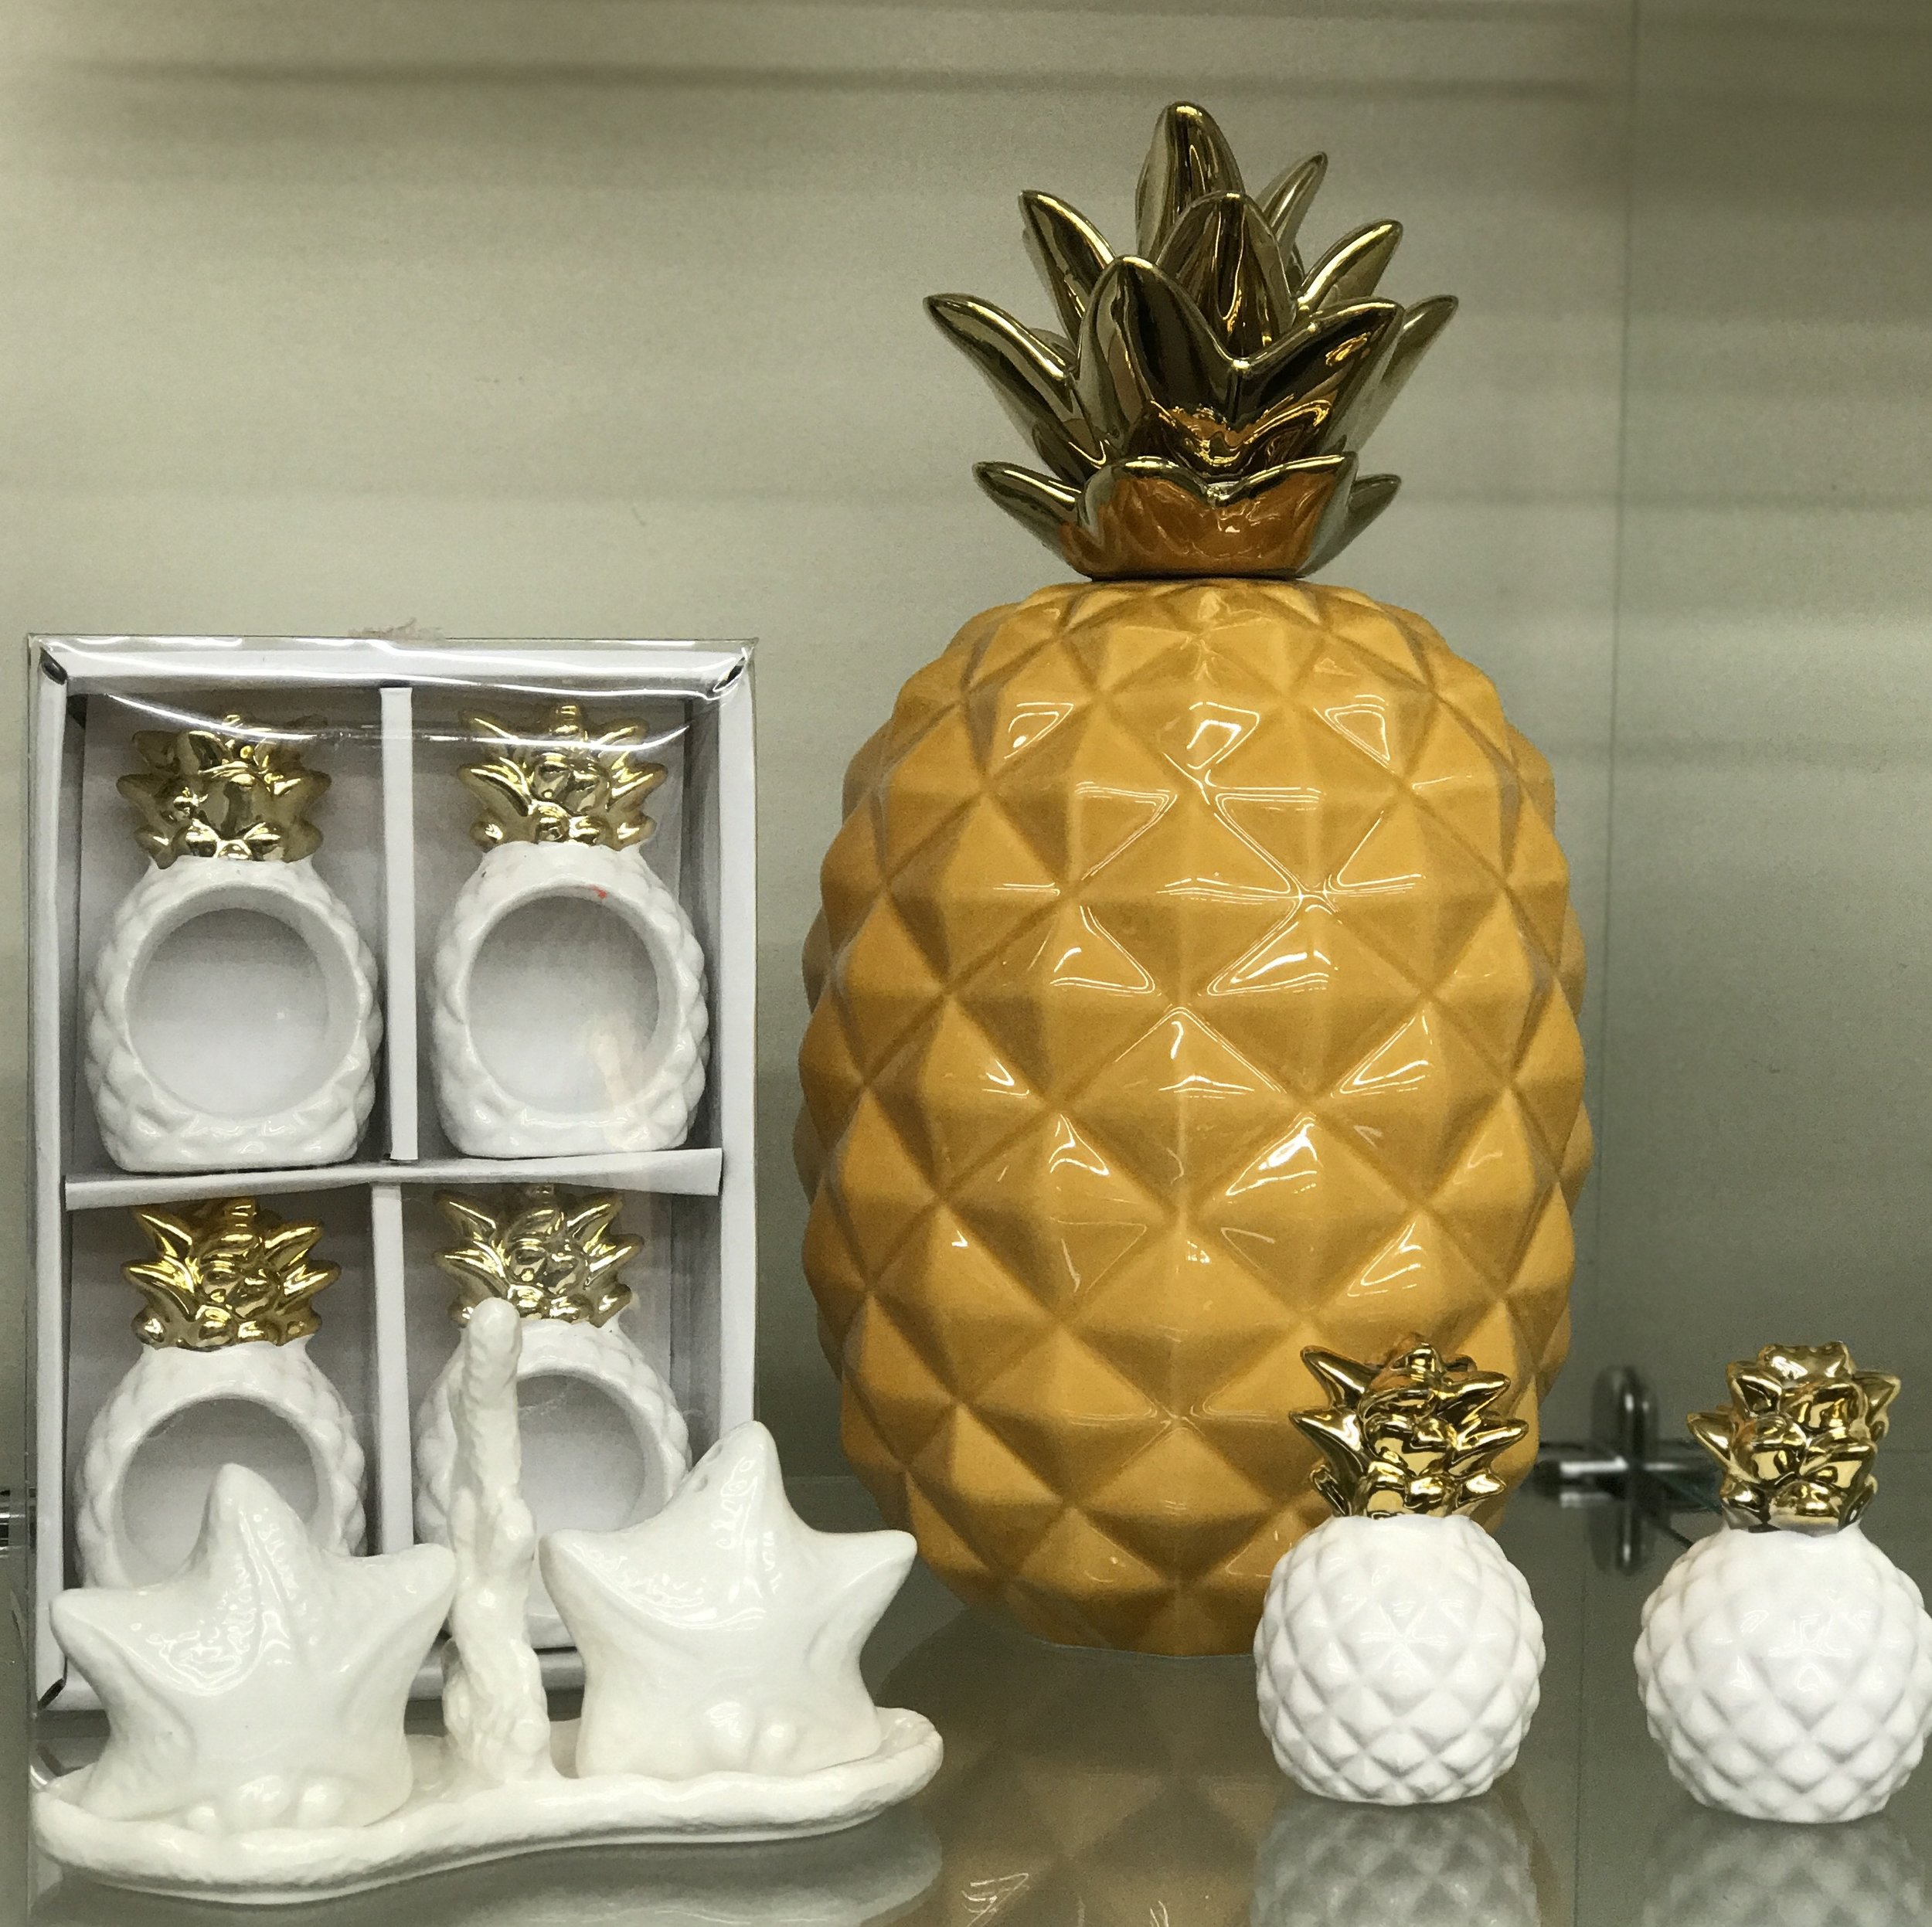 Pineapples - Salt and Pepper Shakers, Napkin Rings and Decorative Pineapple